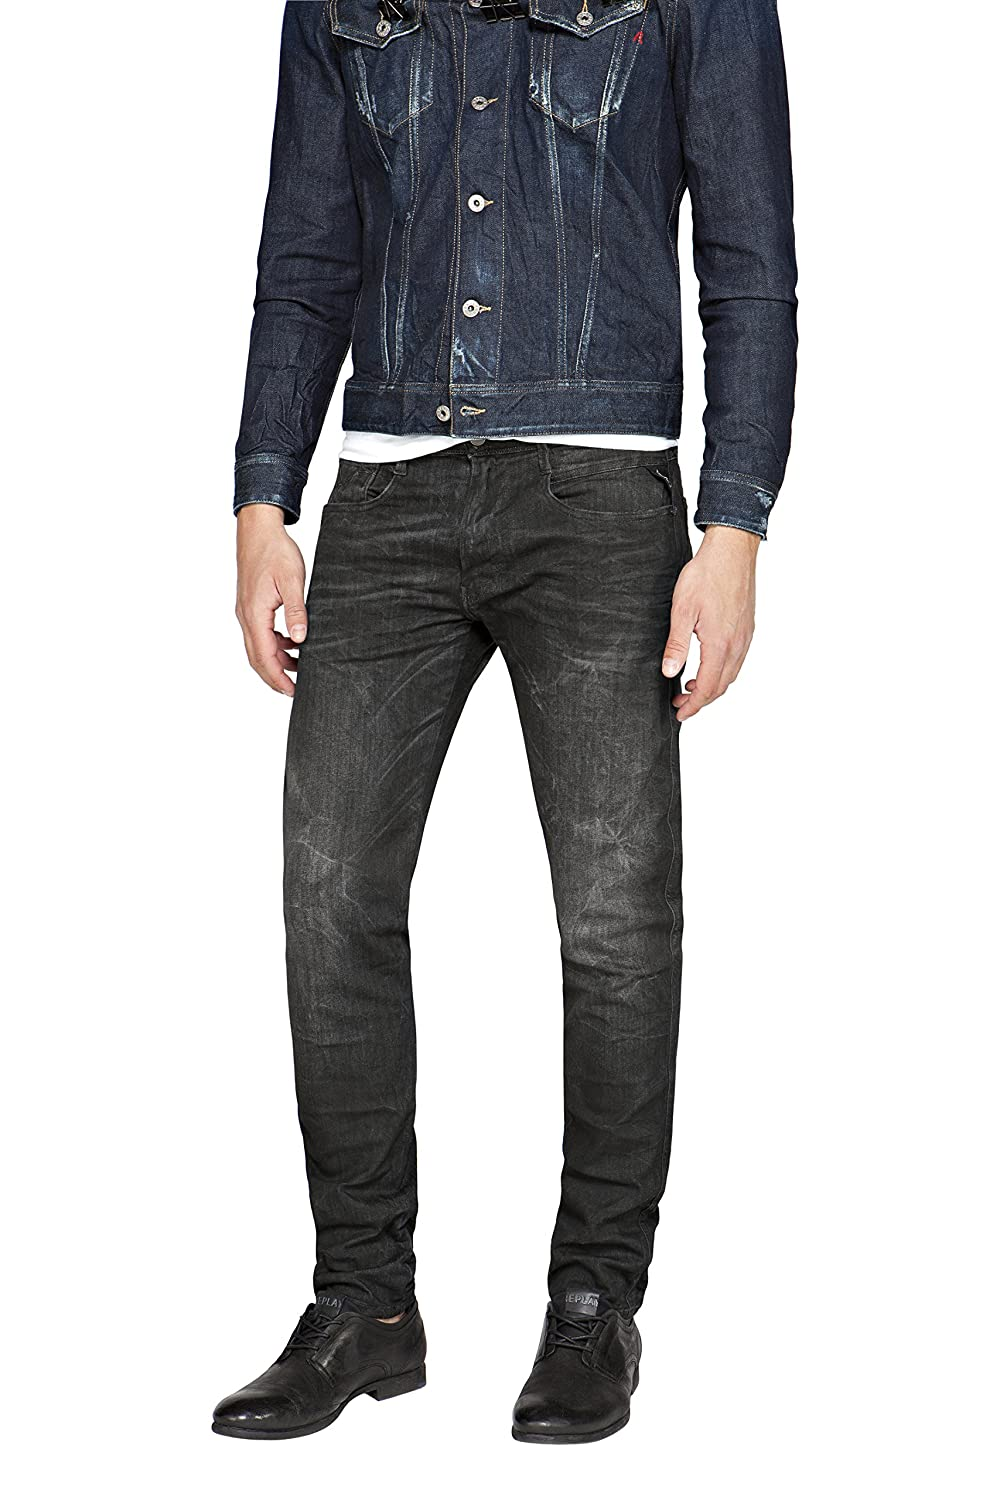 Replay Anbass, Jeans Hombre